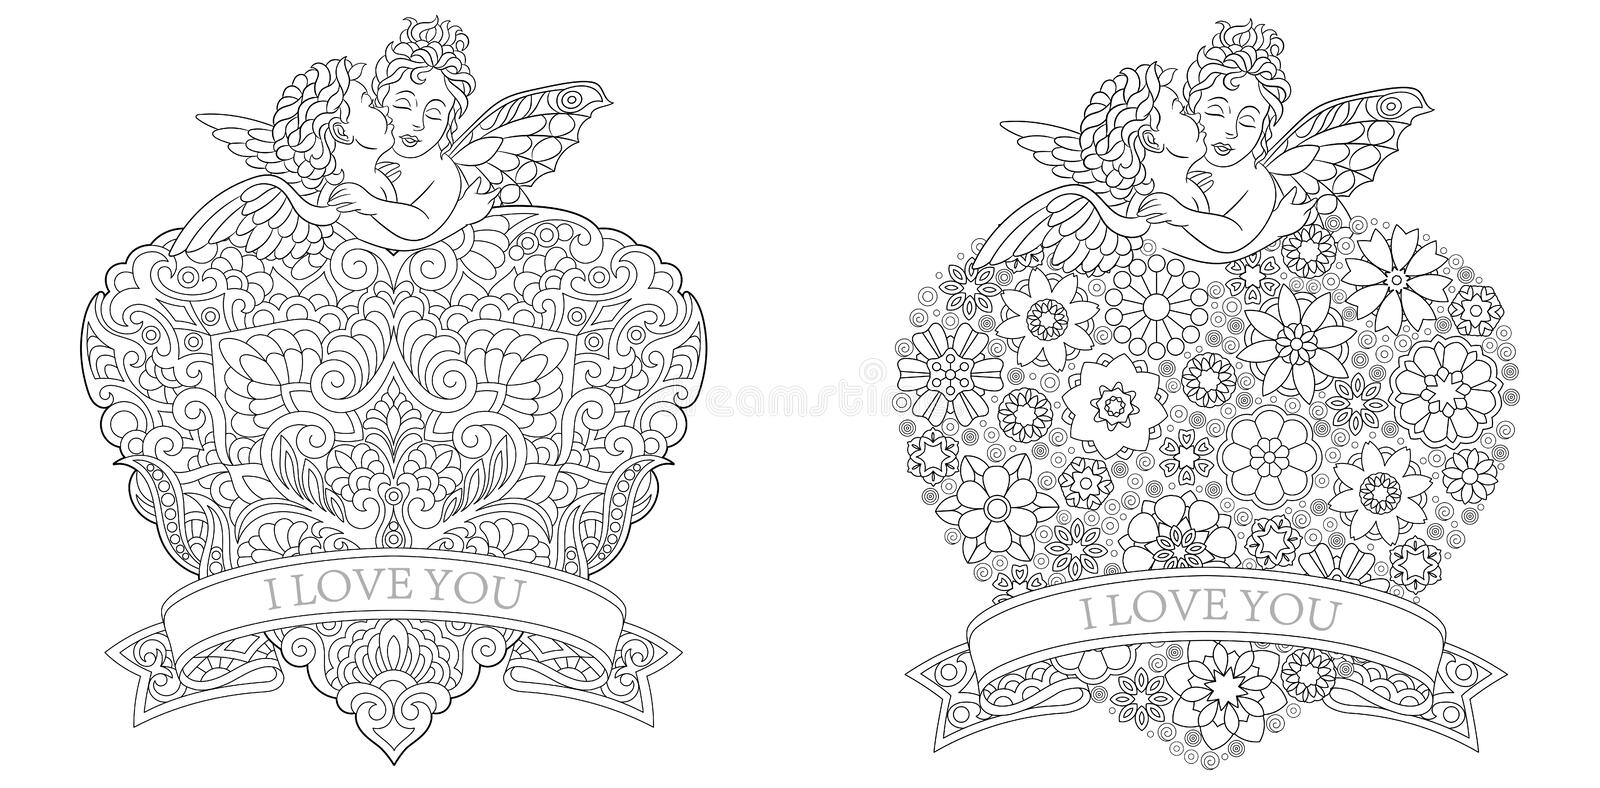 Coloring pages with valentine baby angels kissing royalty free illustration